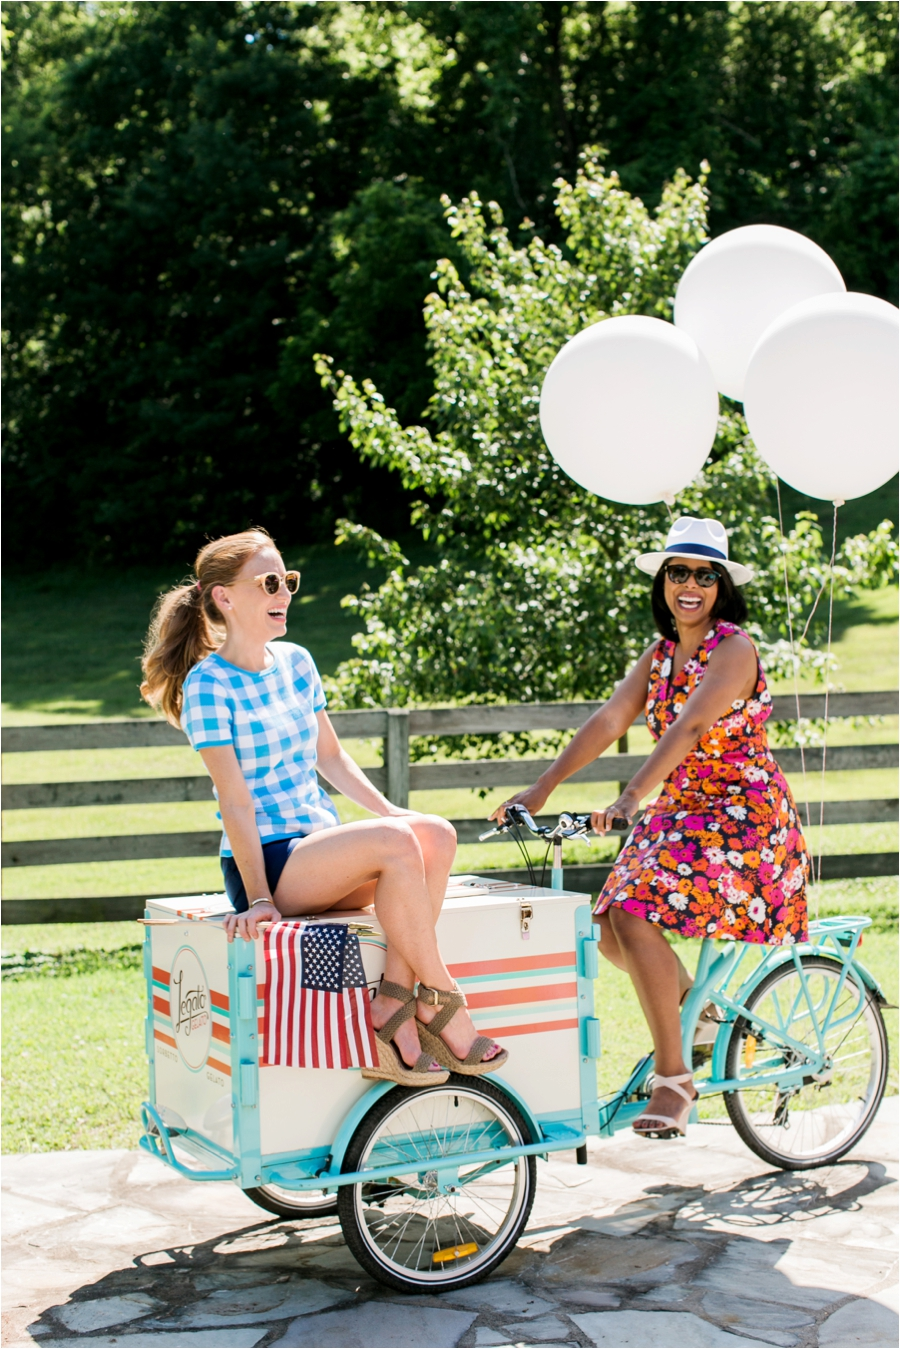 draper james summer pool party editorial by charlottesville photographer, Amy Nicole Photography_0017